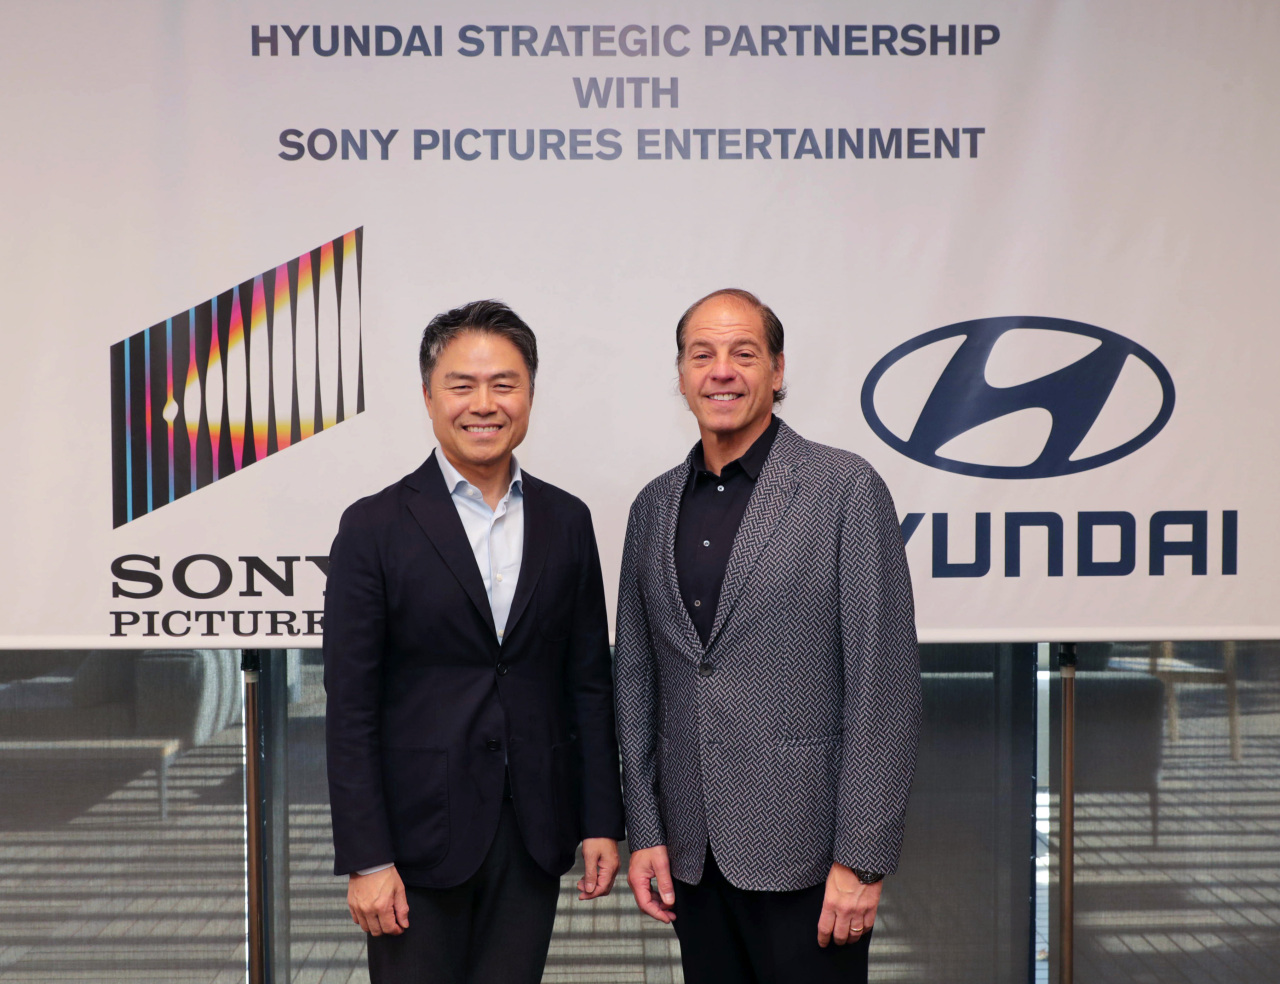 Hyundai Motor Group Vice President of customer experience Cho Won-hong (left) and Sony Pictures Entertainment Vice President of global partnership Jeffrey Godsick pose for a photo during a partnership deal signing ceremony held in Los Angeles, US. (Hyundai Motor Group)